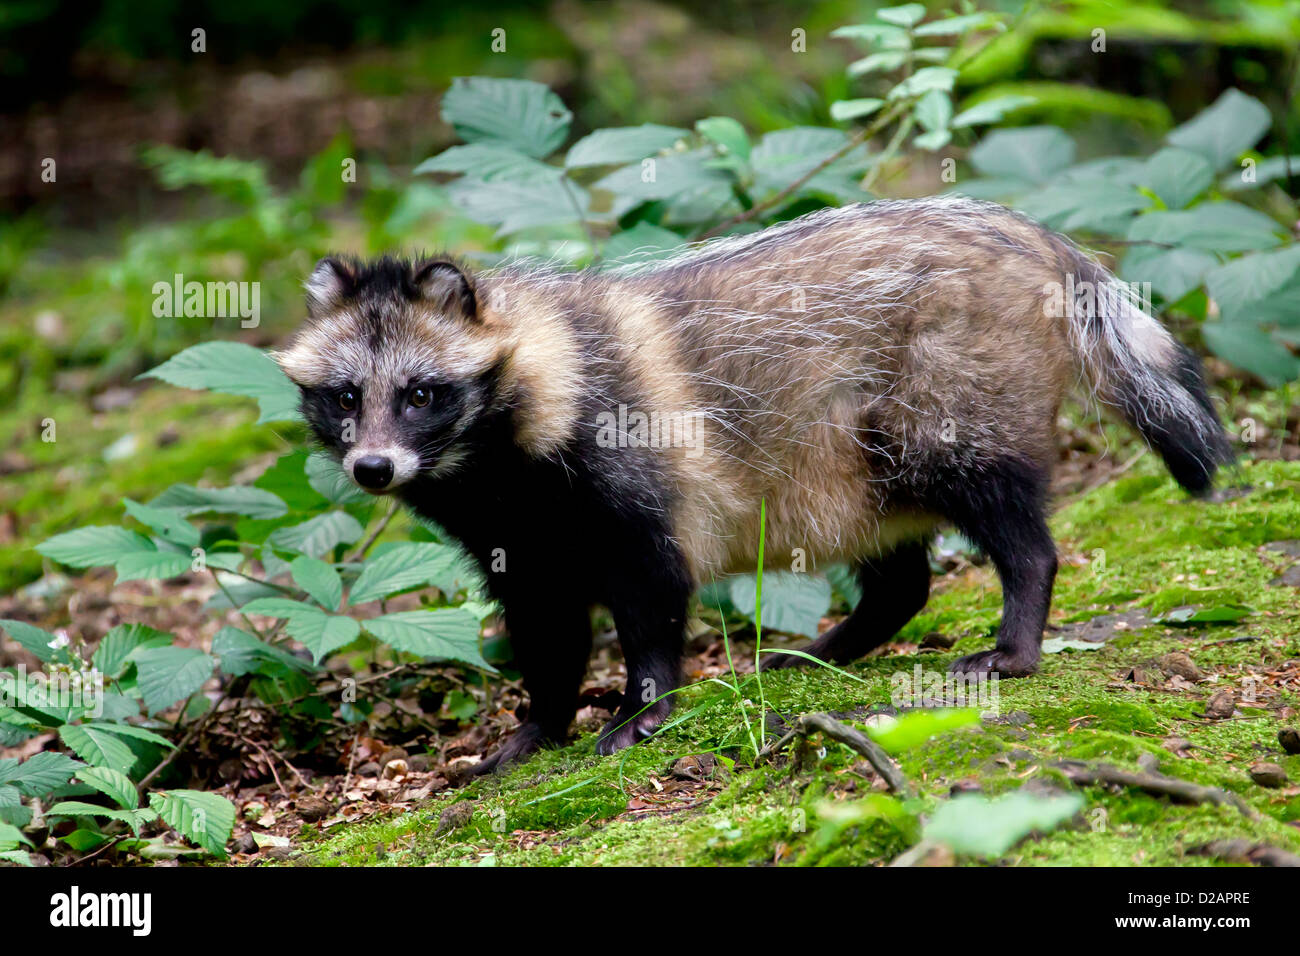 raccoon dog nyctereutes procyonoides invasive species in germany stock photo 53097842 alamy. Black Bedroom Furniture Sets. Home Design Ideas